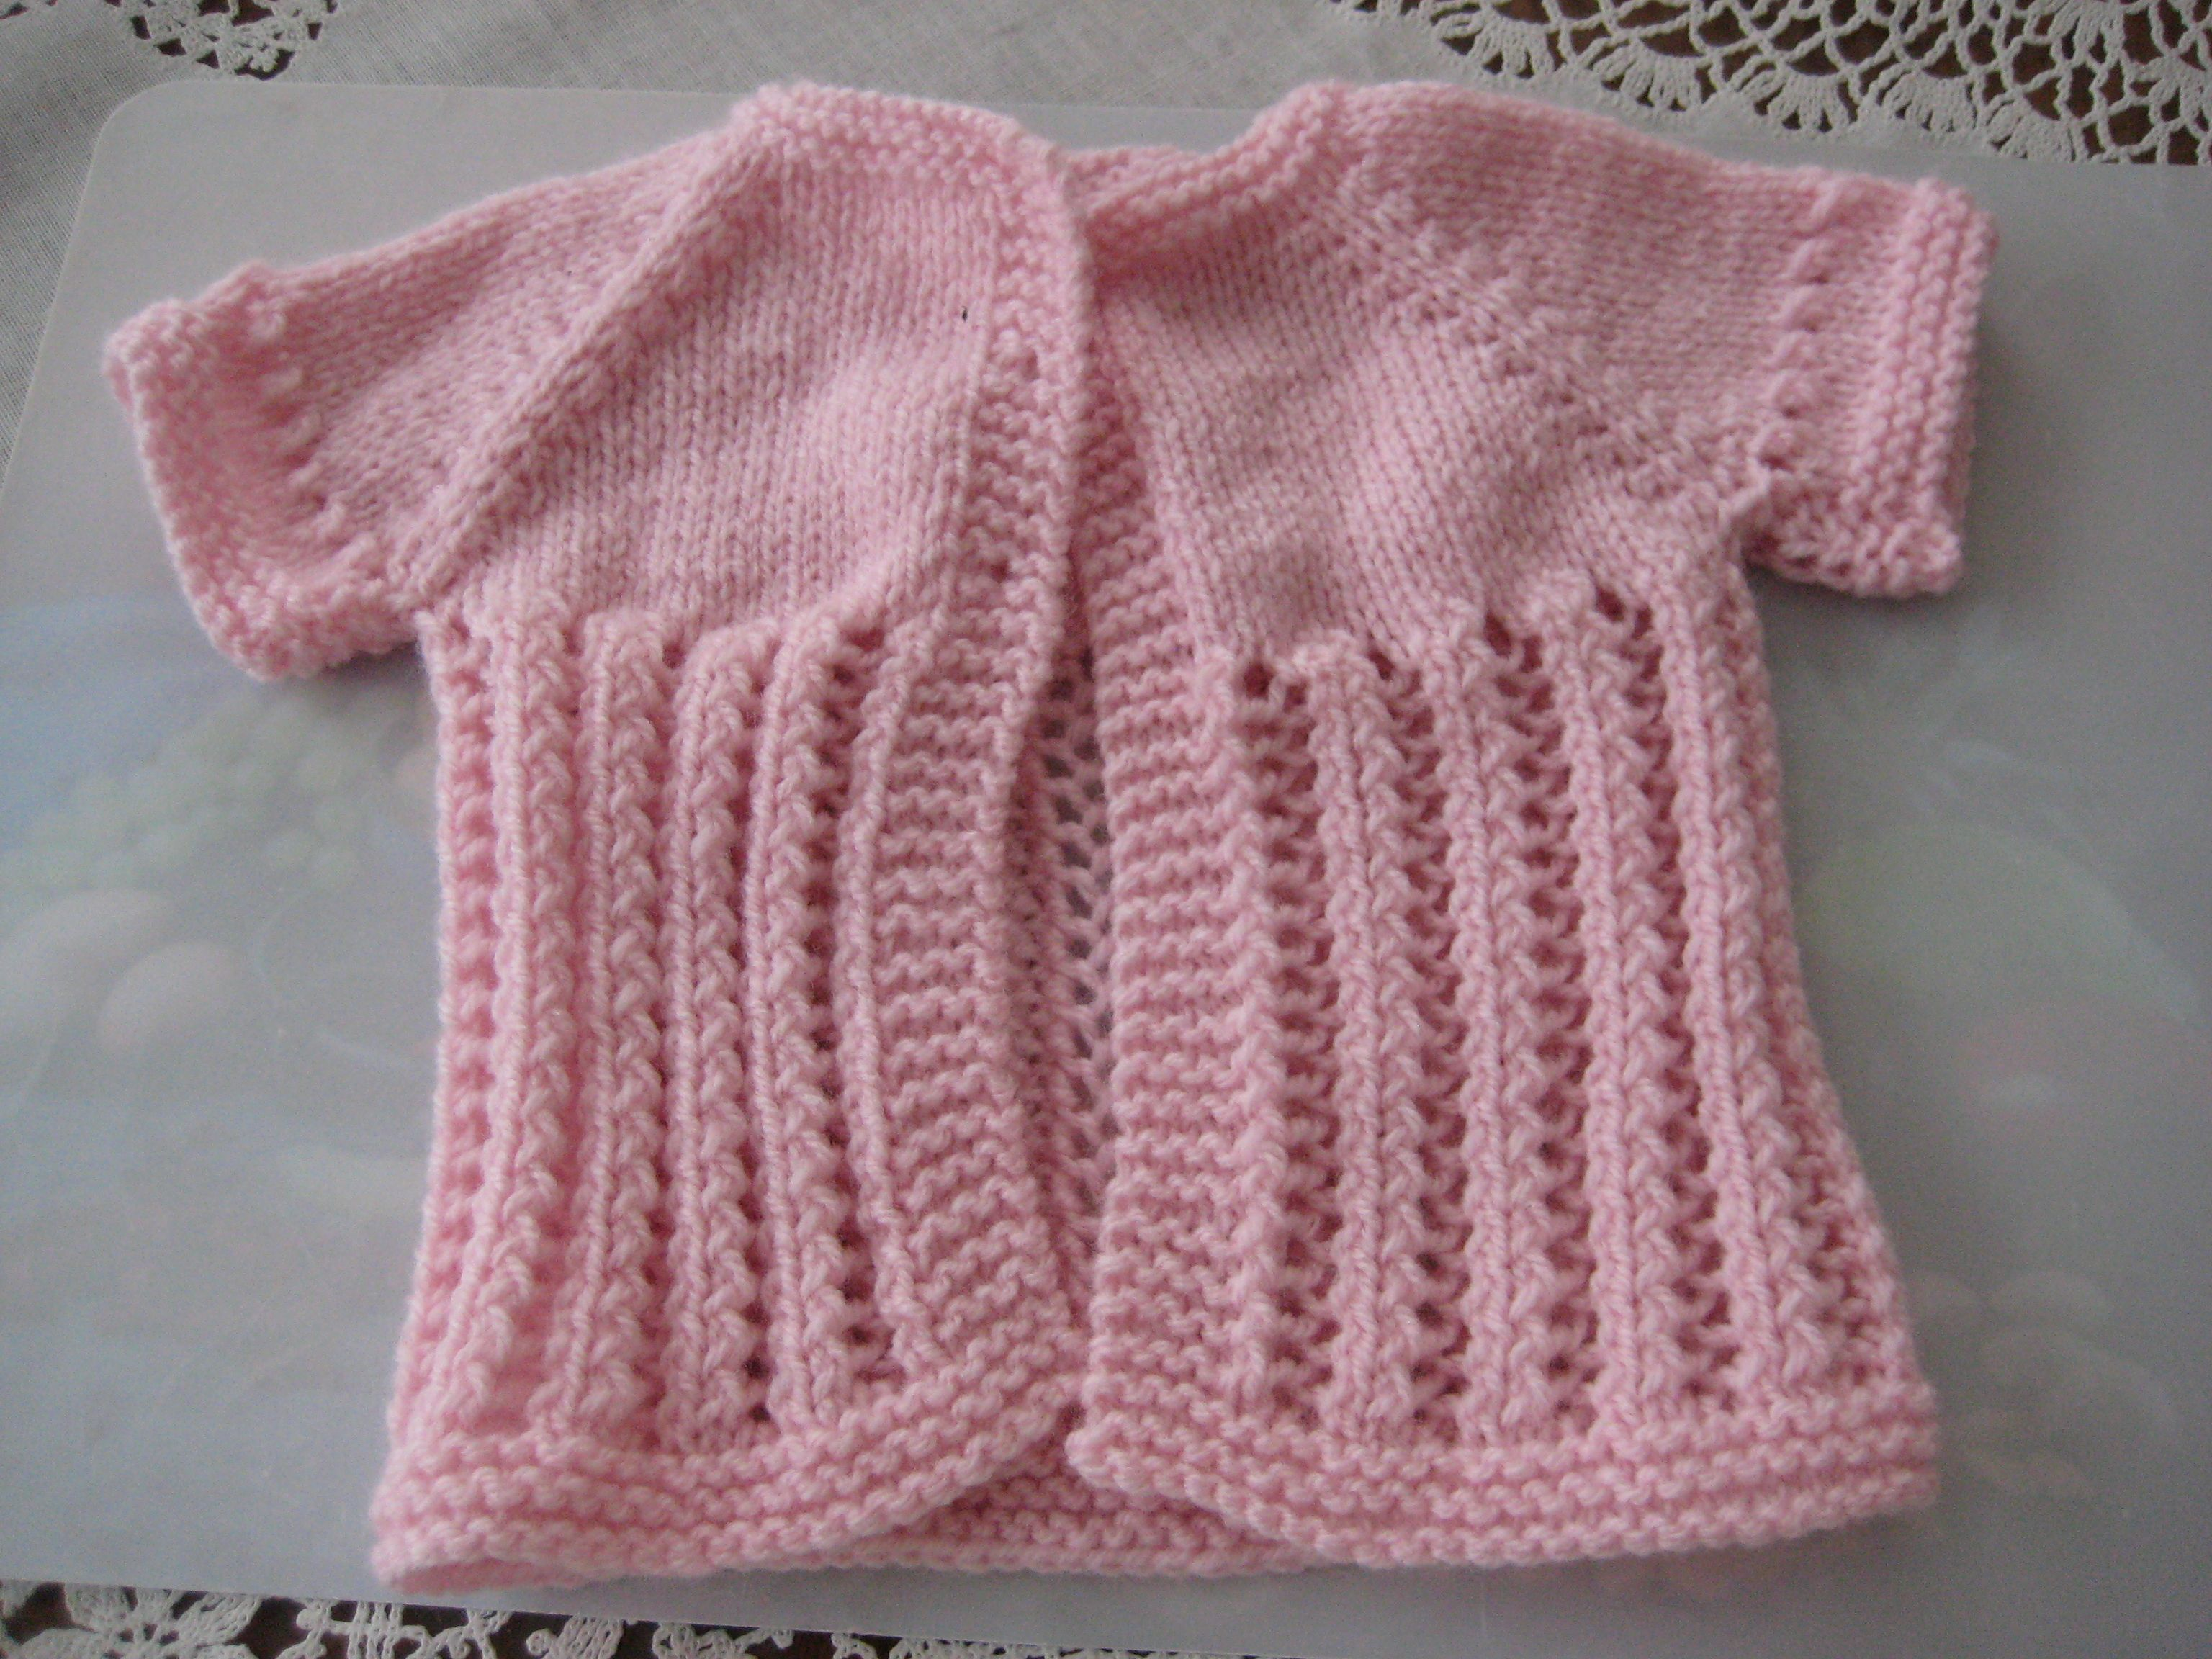 b6a0fbb55 ravelry knittingants project of olive you baby cardigan by taiga ...